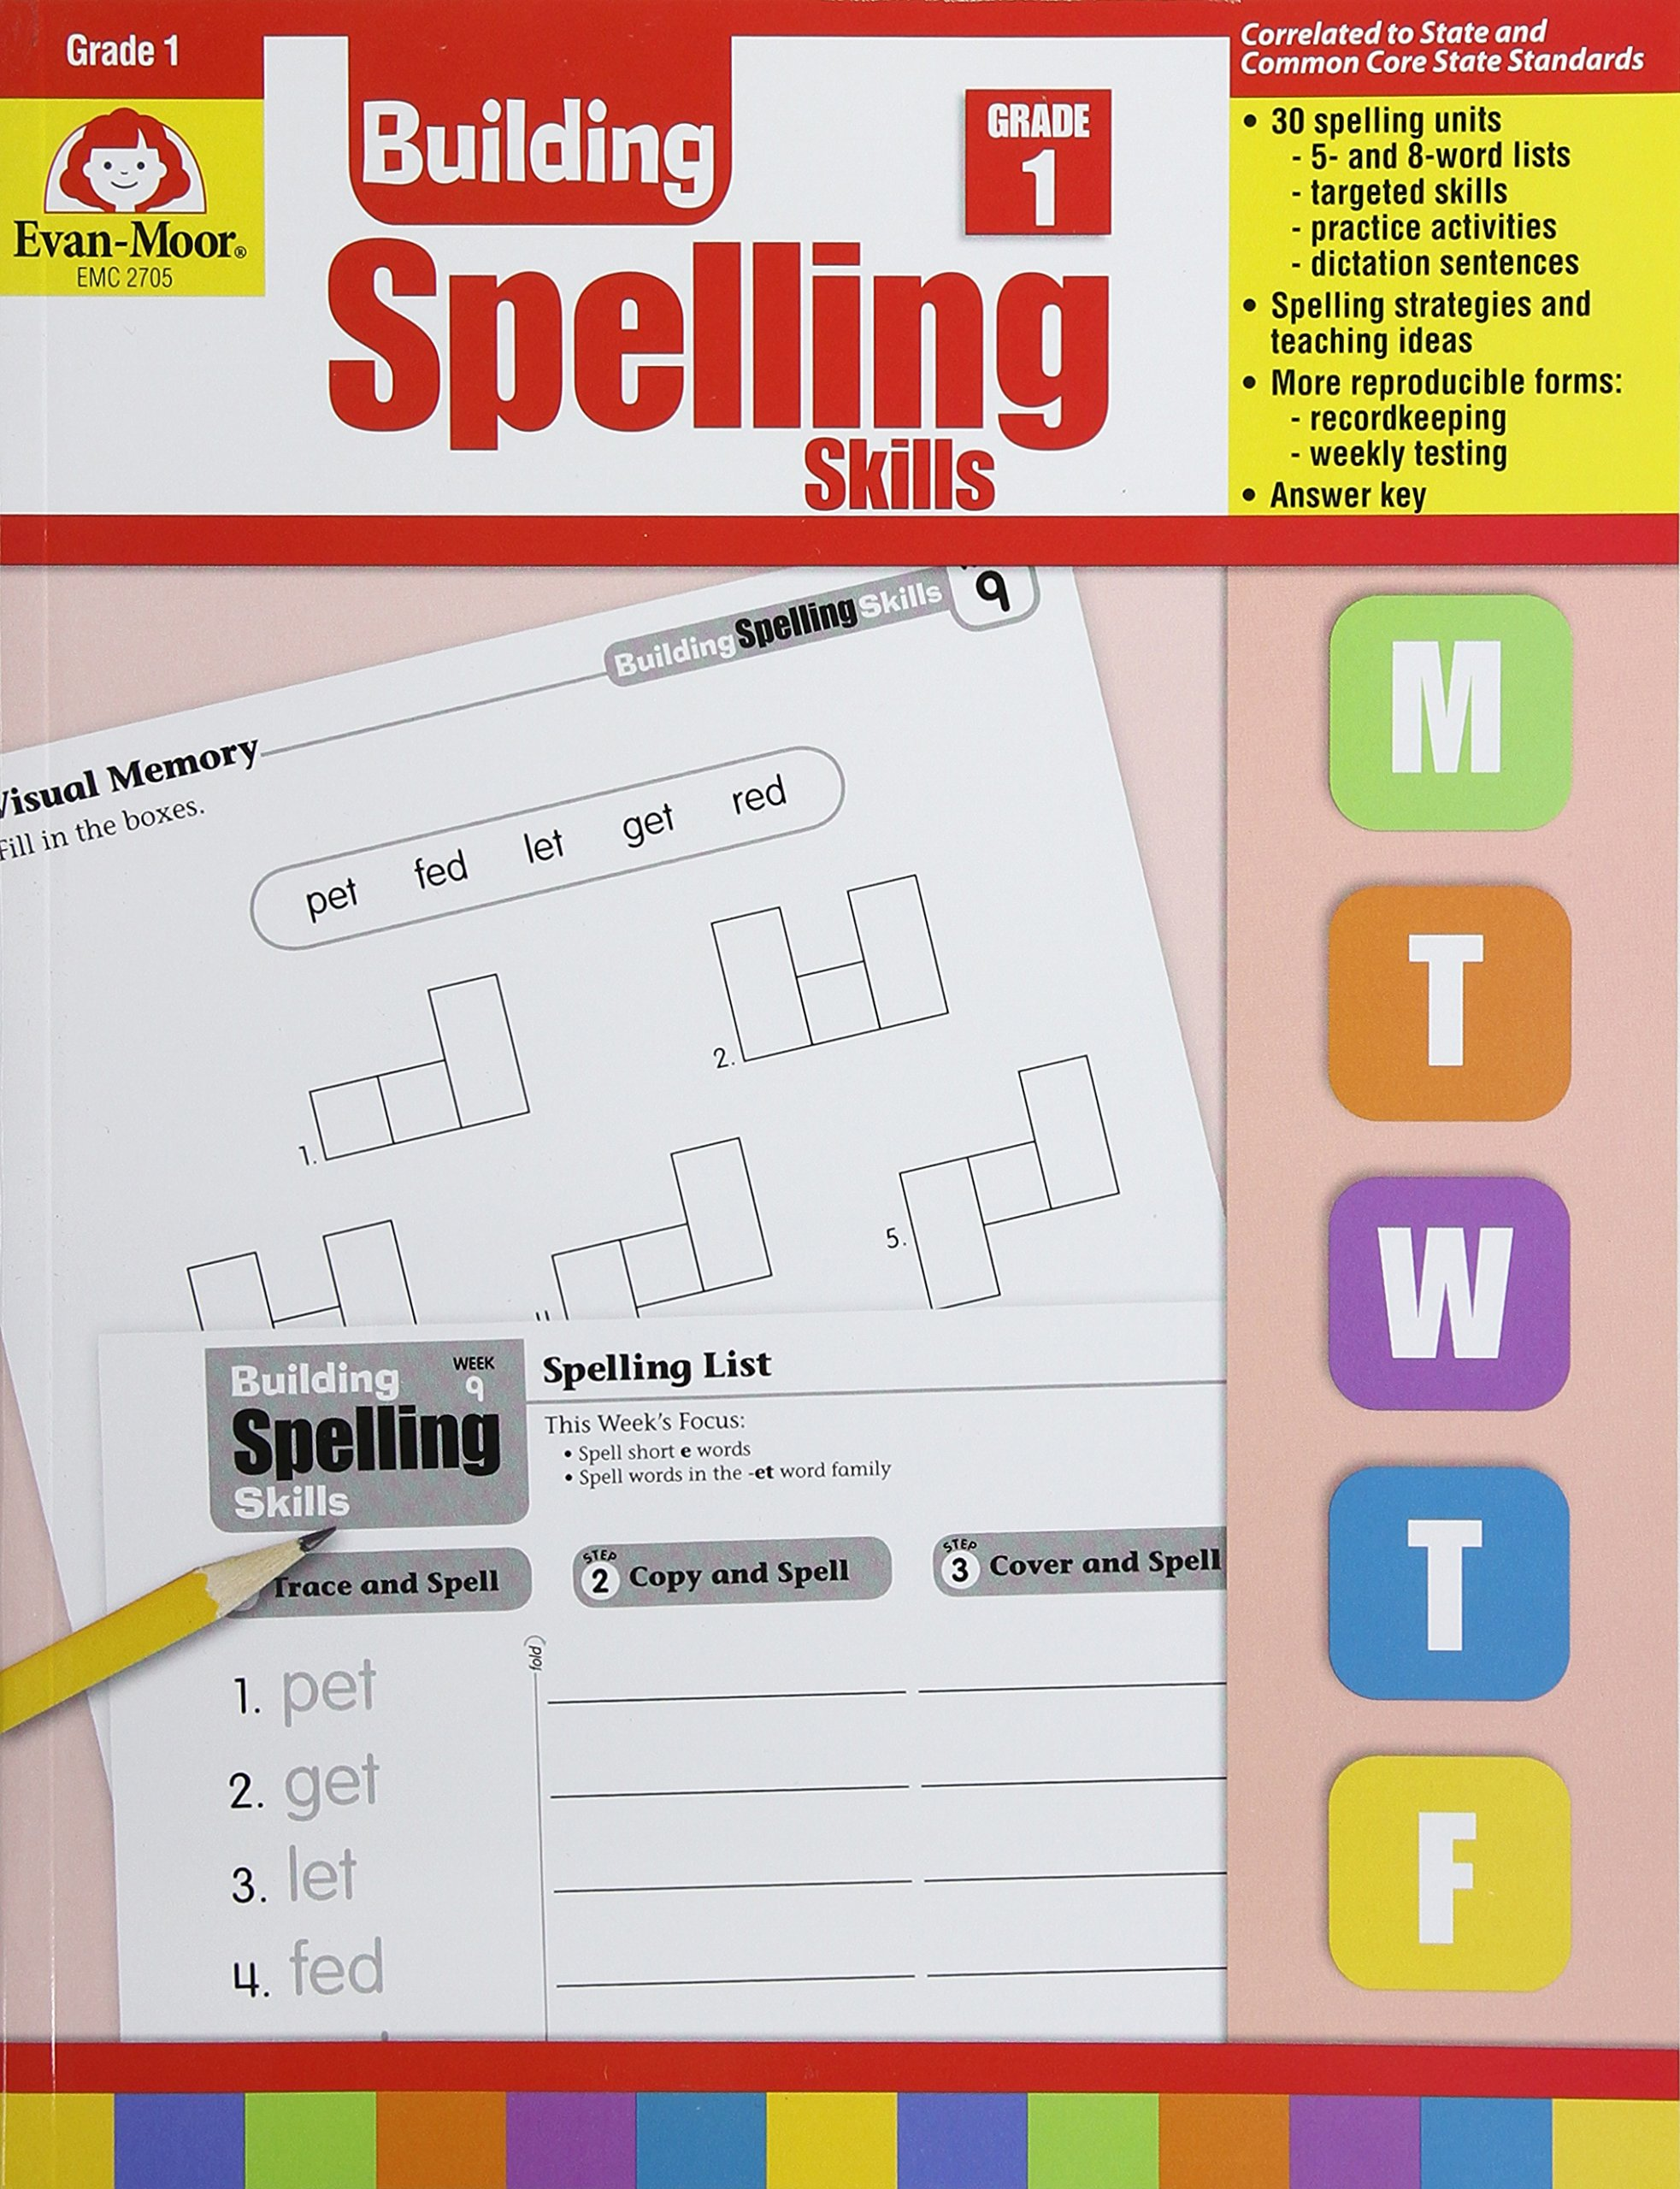 Building spelling skills grade 1 amazon evan moor educational building spelling skills grade 1 amazon evan moor educational publishers books fandeluxe Gallery